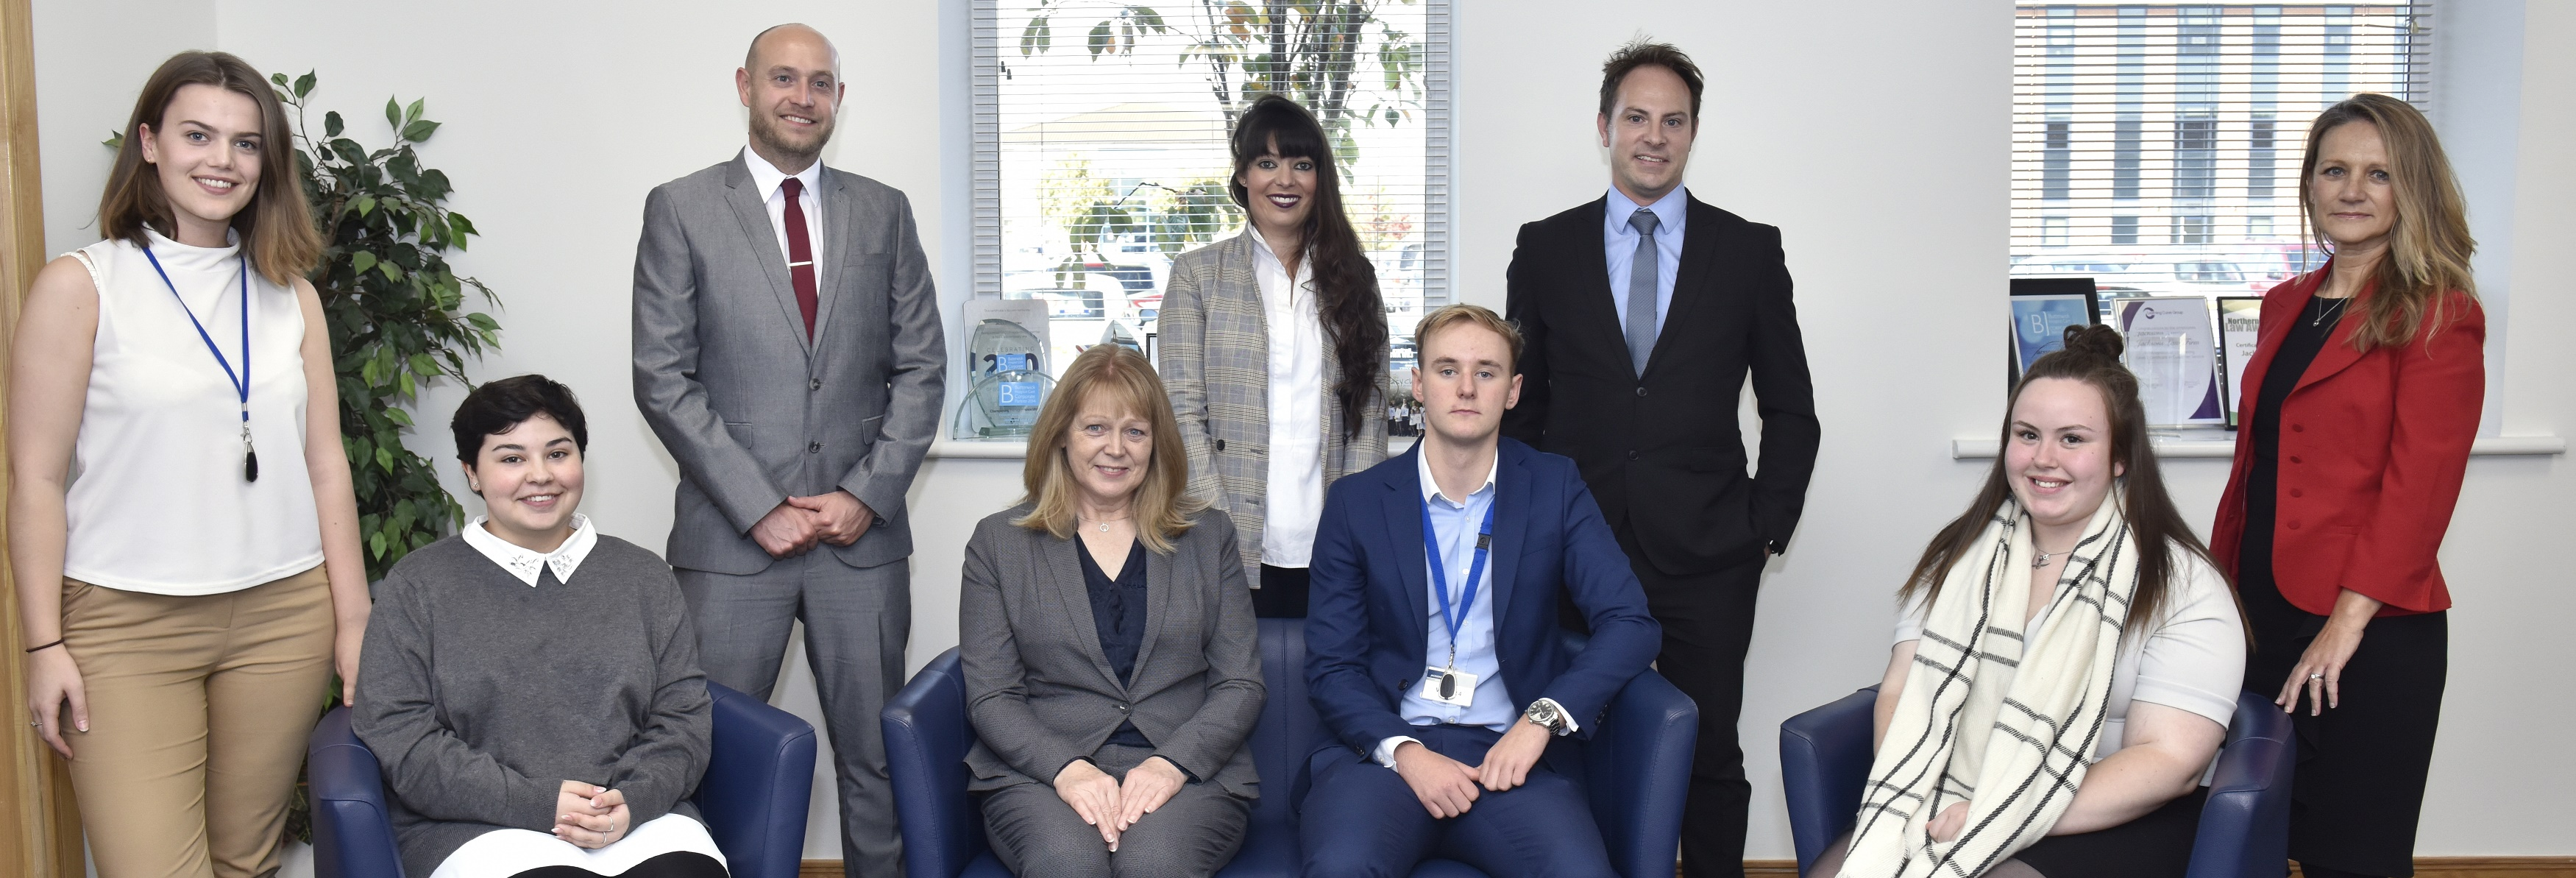 Jacksons announce new staff and partner promotions